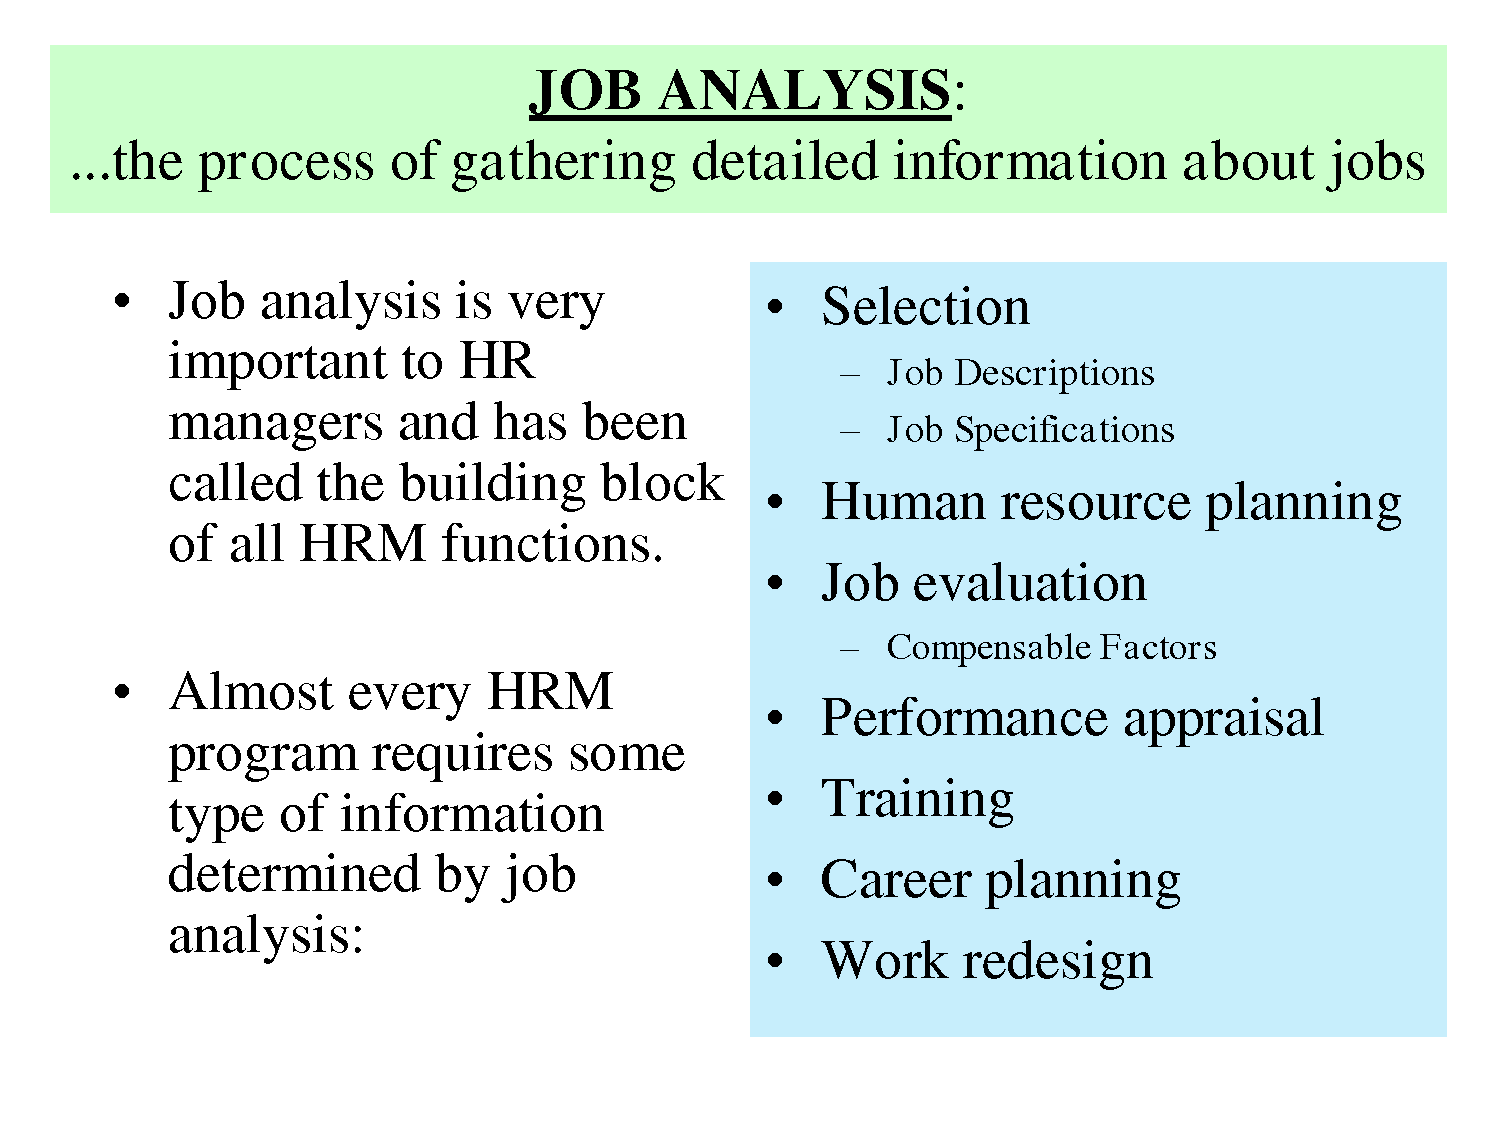 job analysis Job analysis - guidelines for completing the job description form guidelines for completing the job description form job analysis overview.